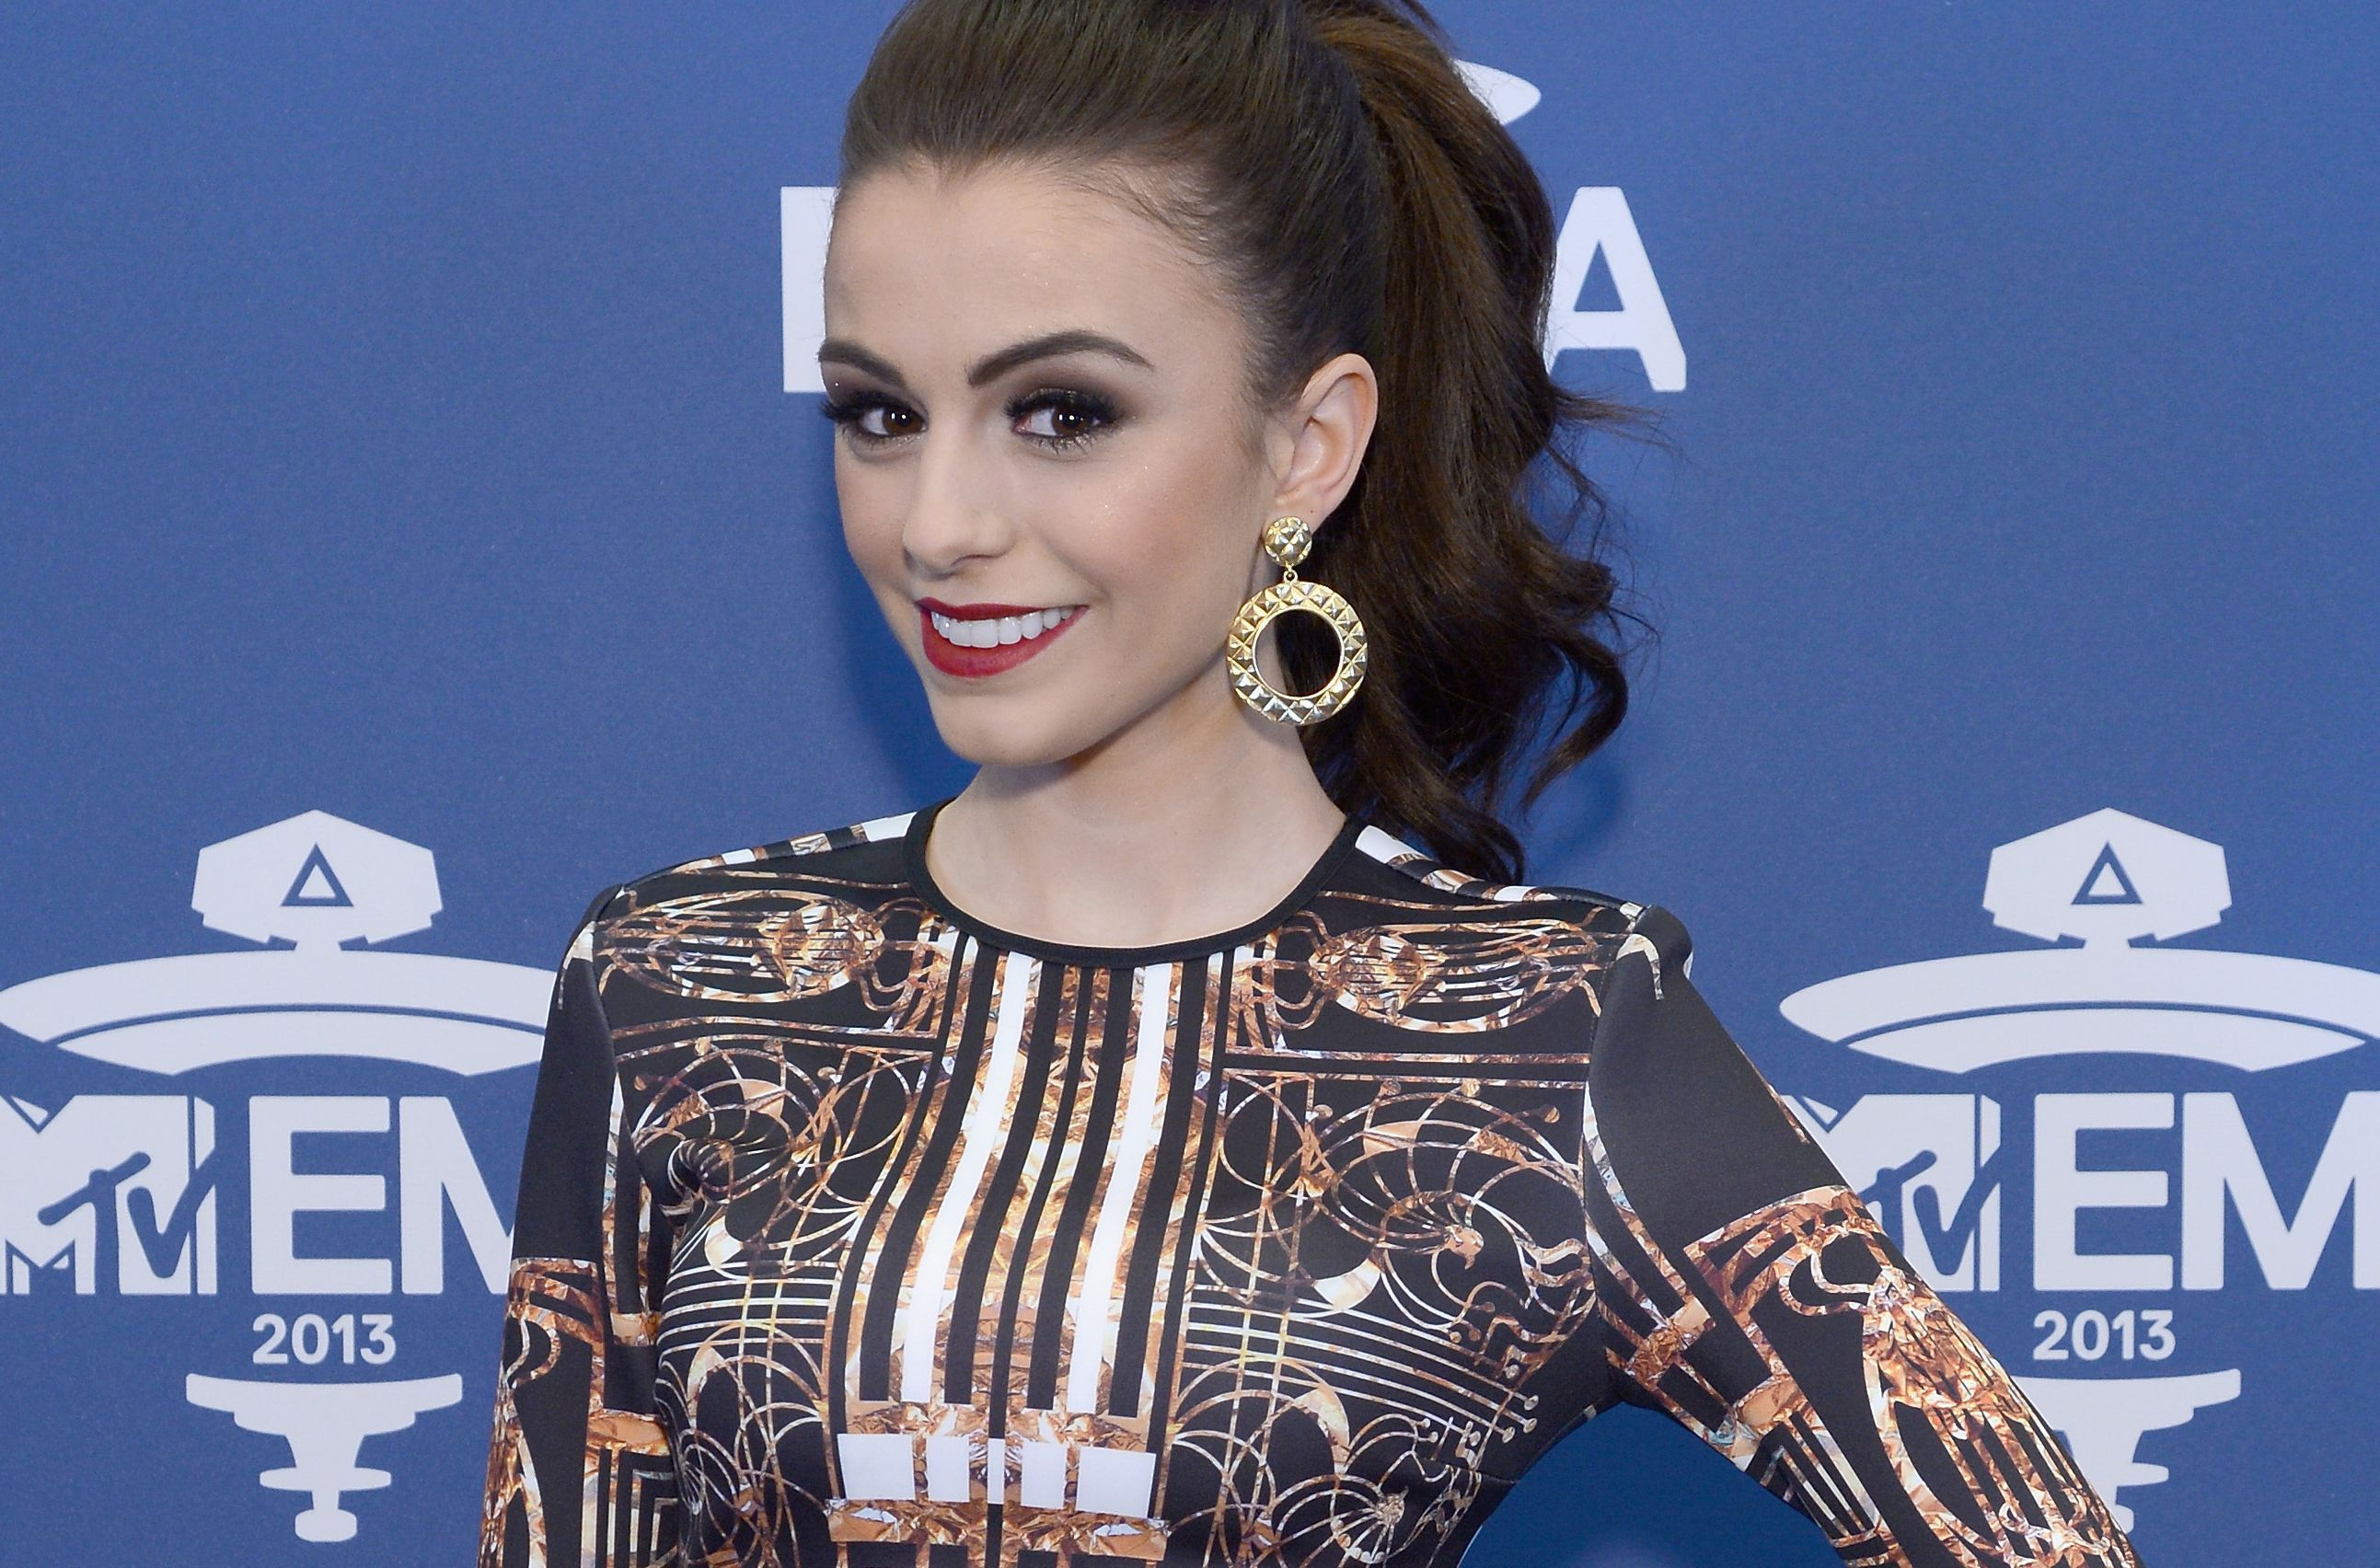 Fall Out Boy Wallpaper 2015 Cher Lloyd Wallpapers Backgrounds